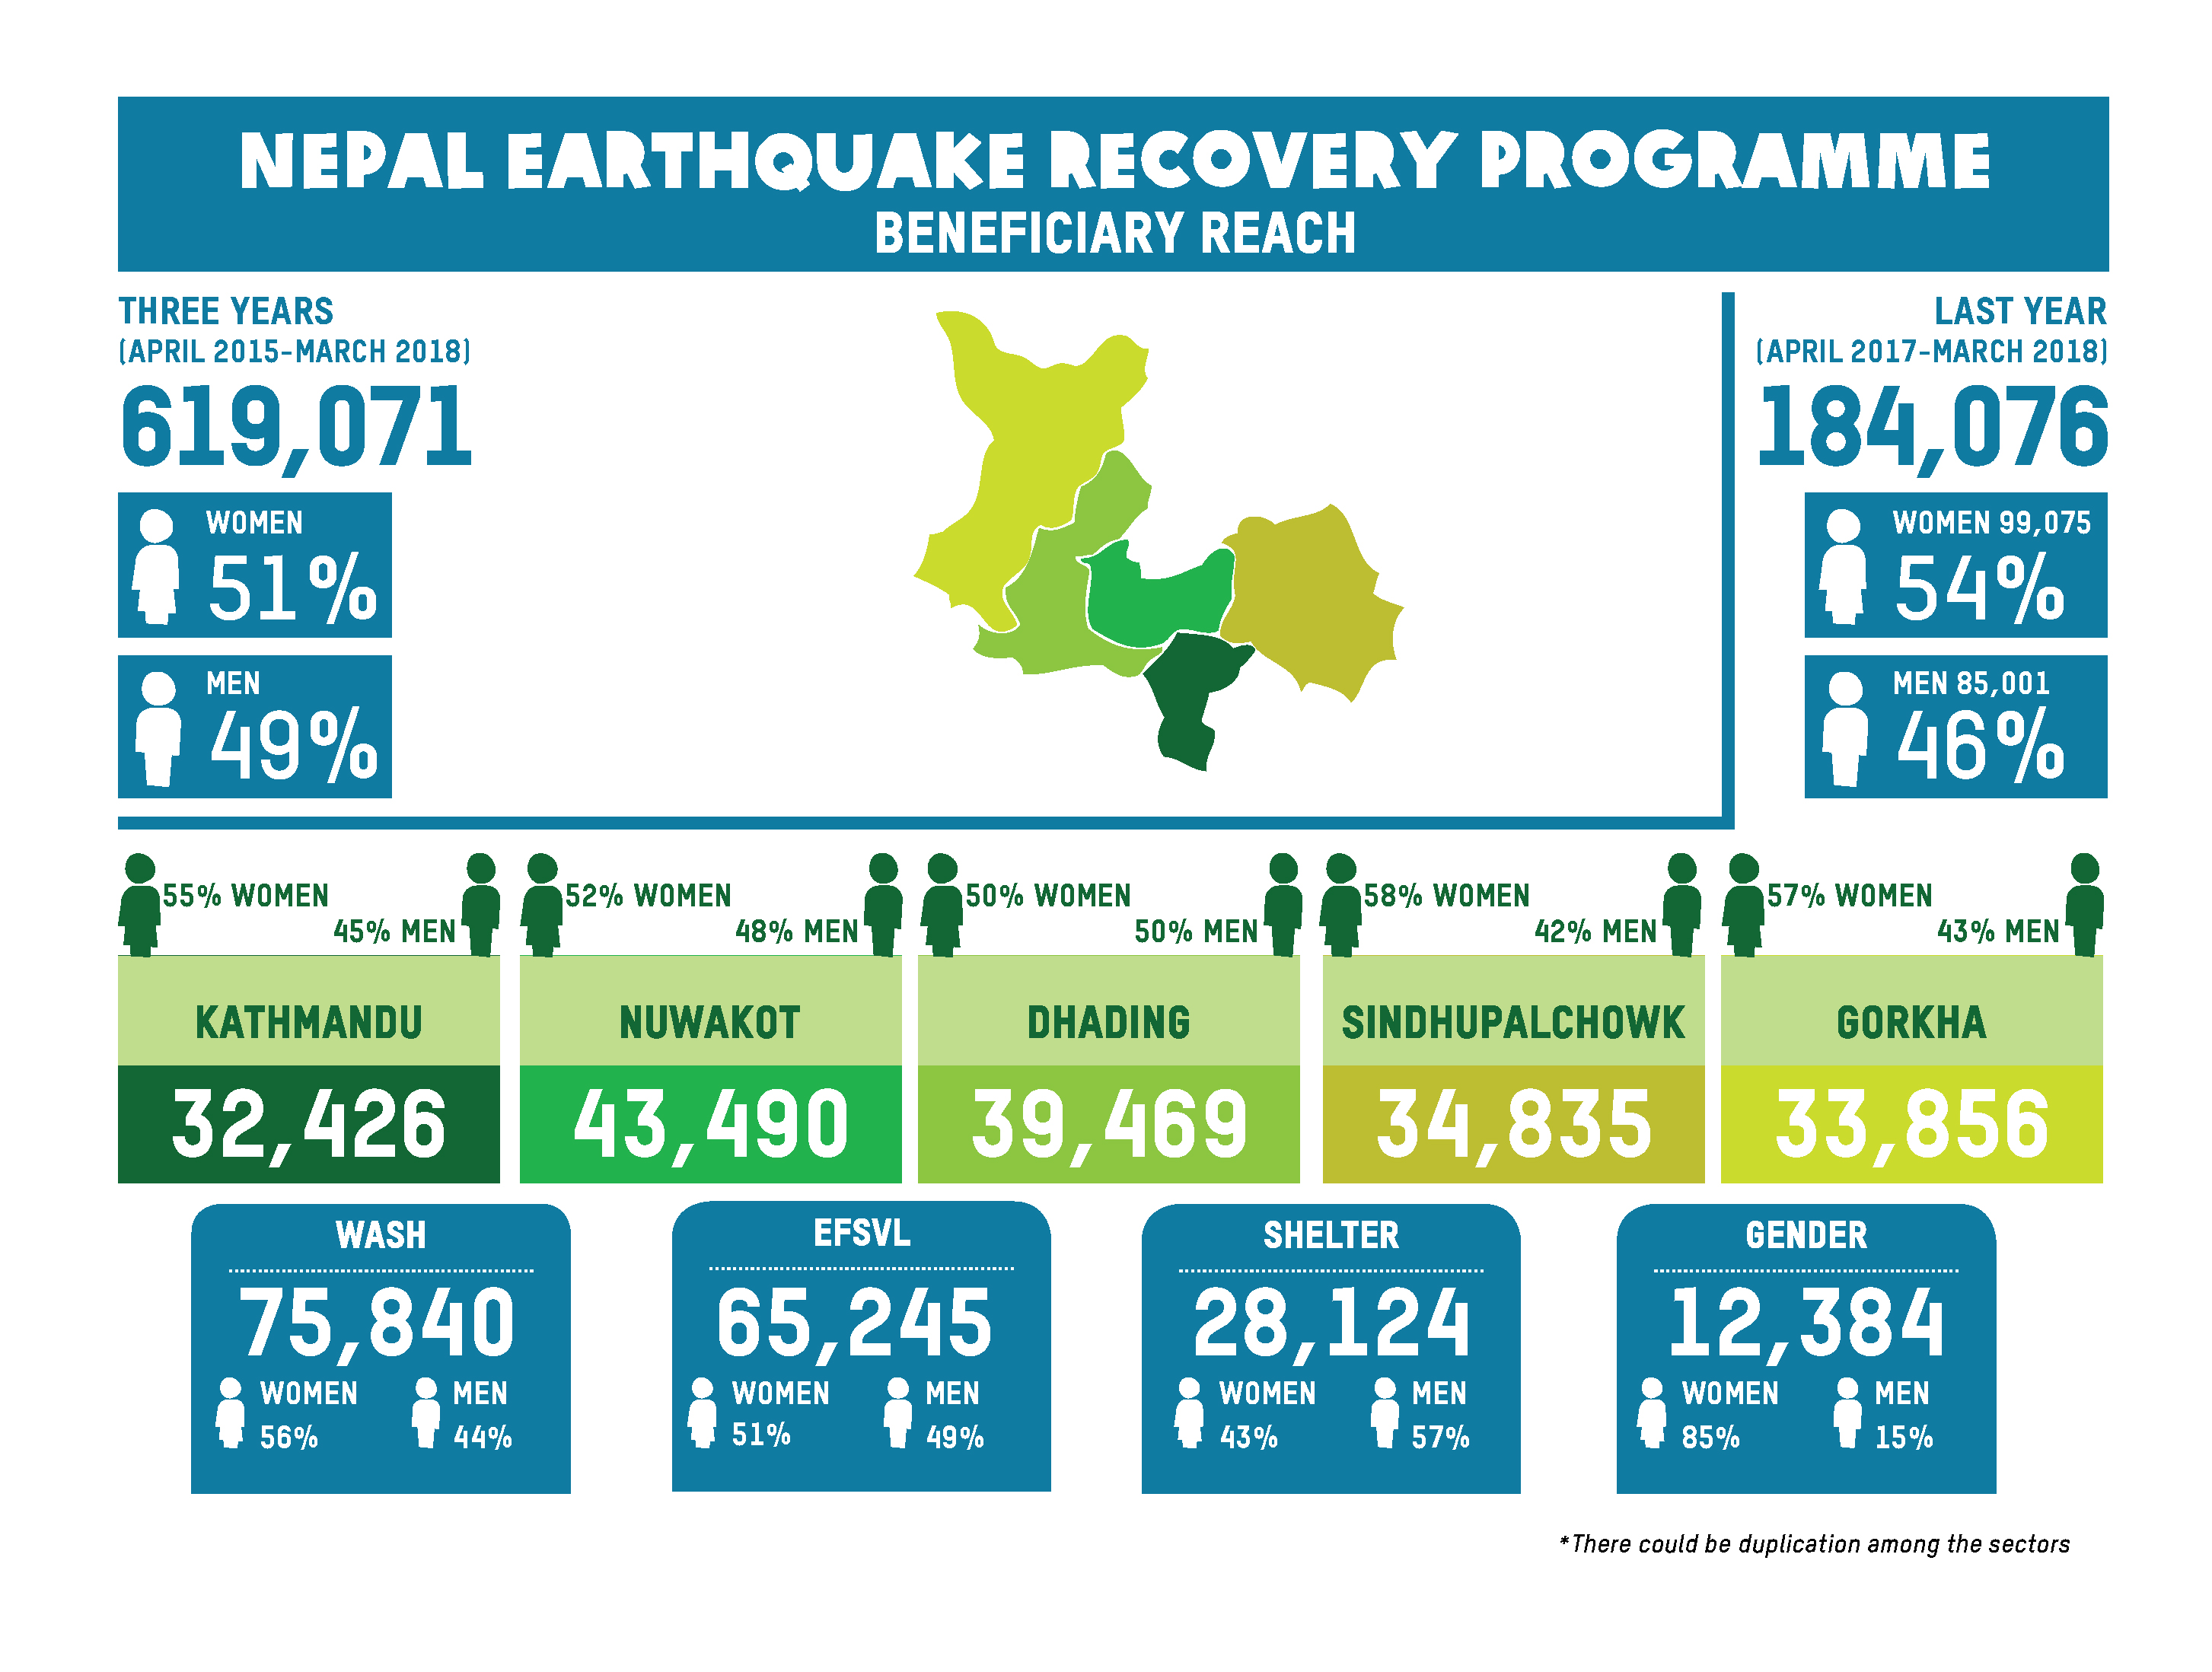 Oxfam's reach to earthquake-affected people